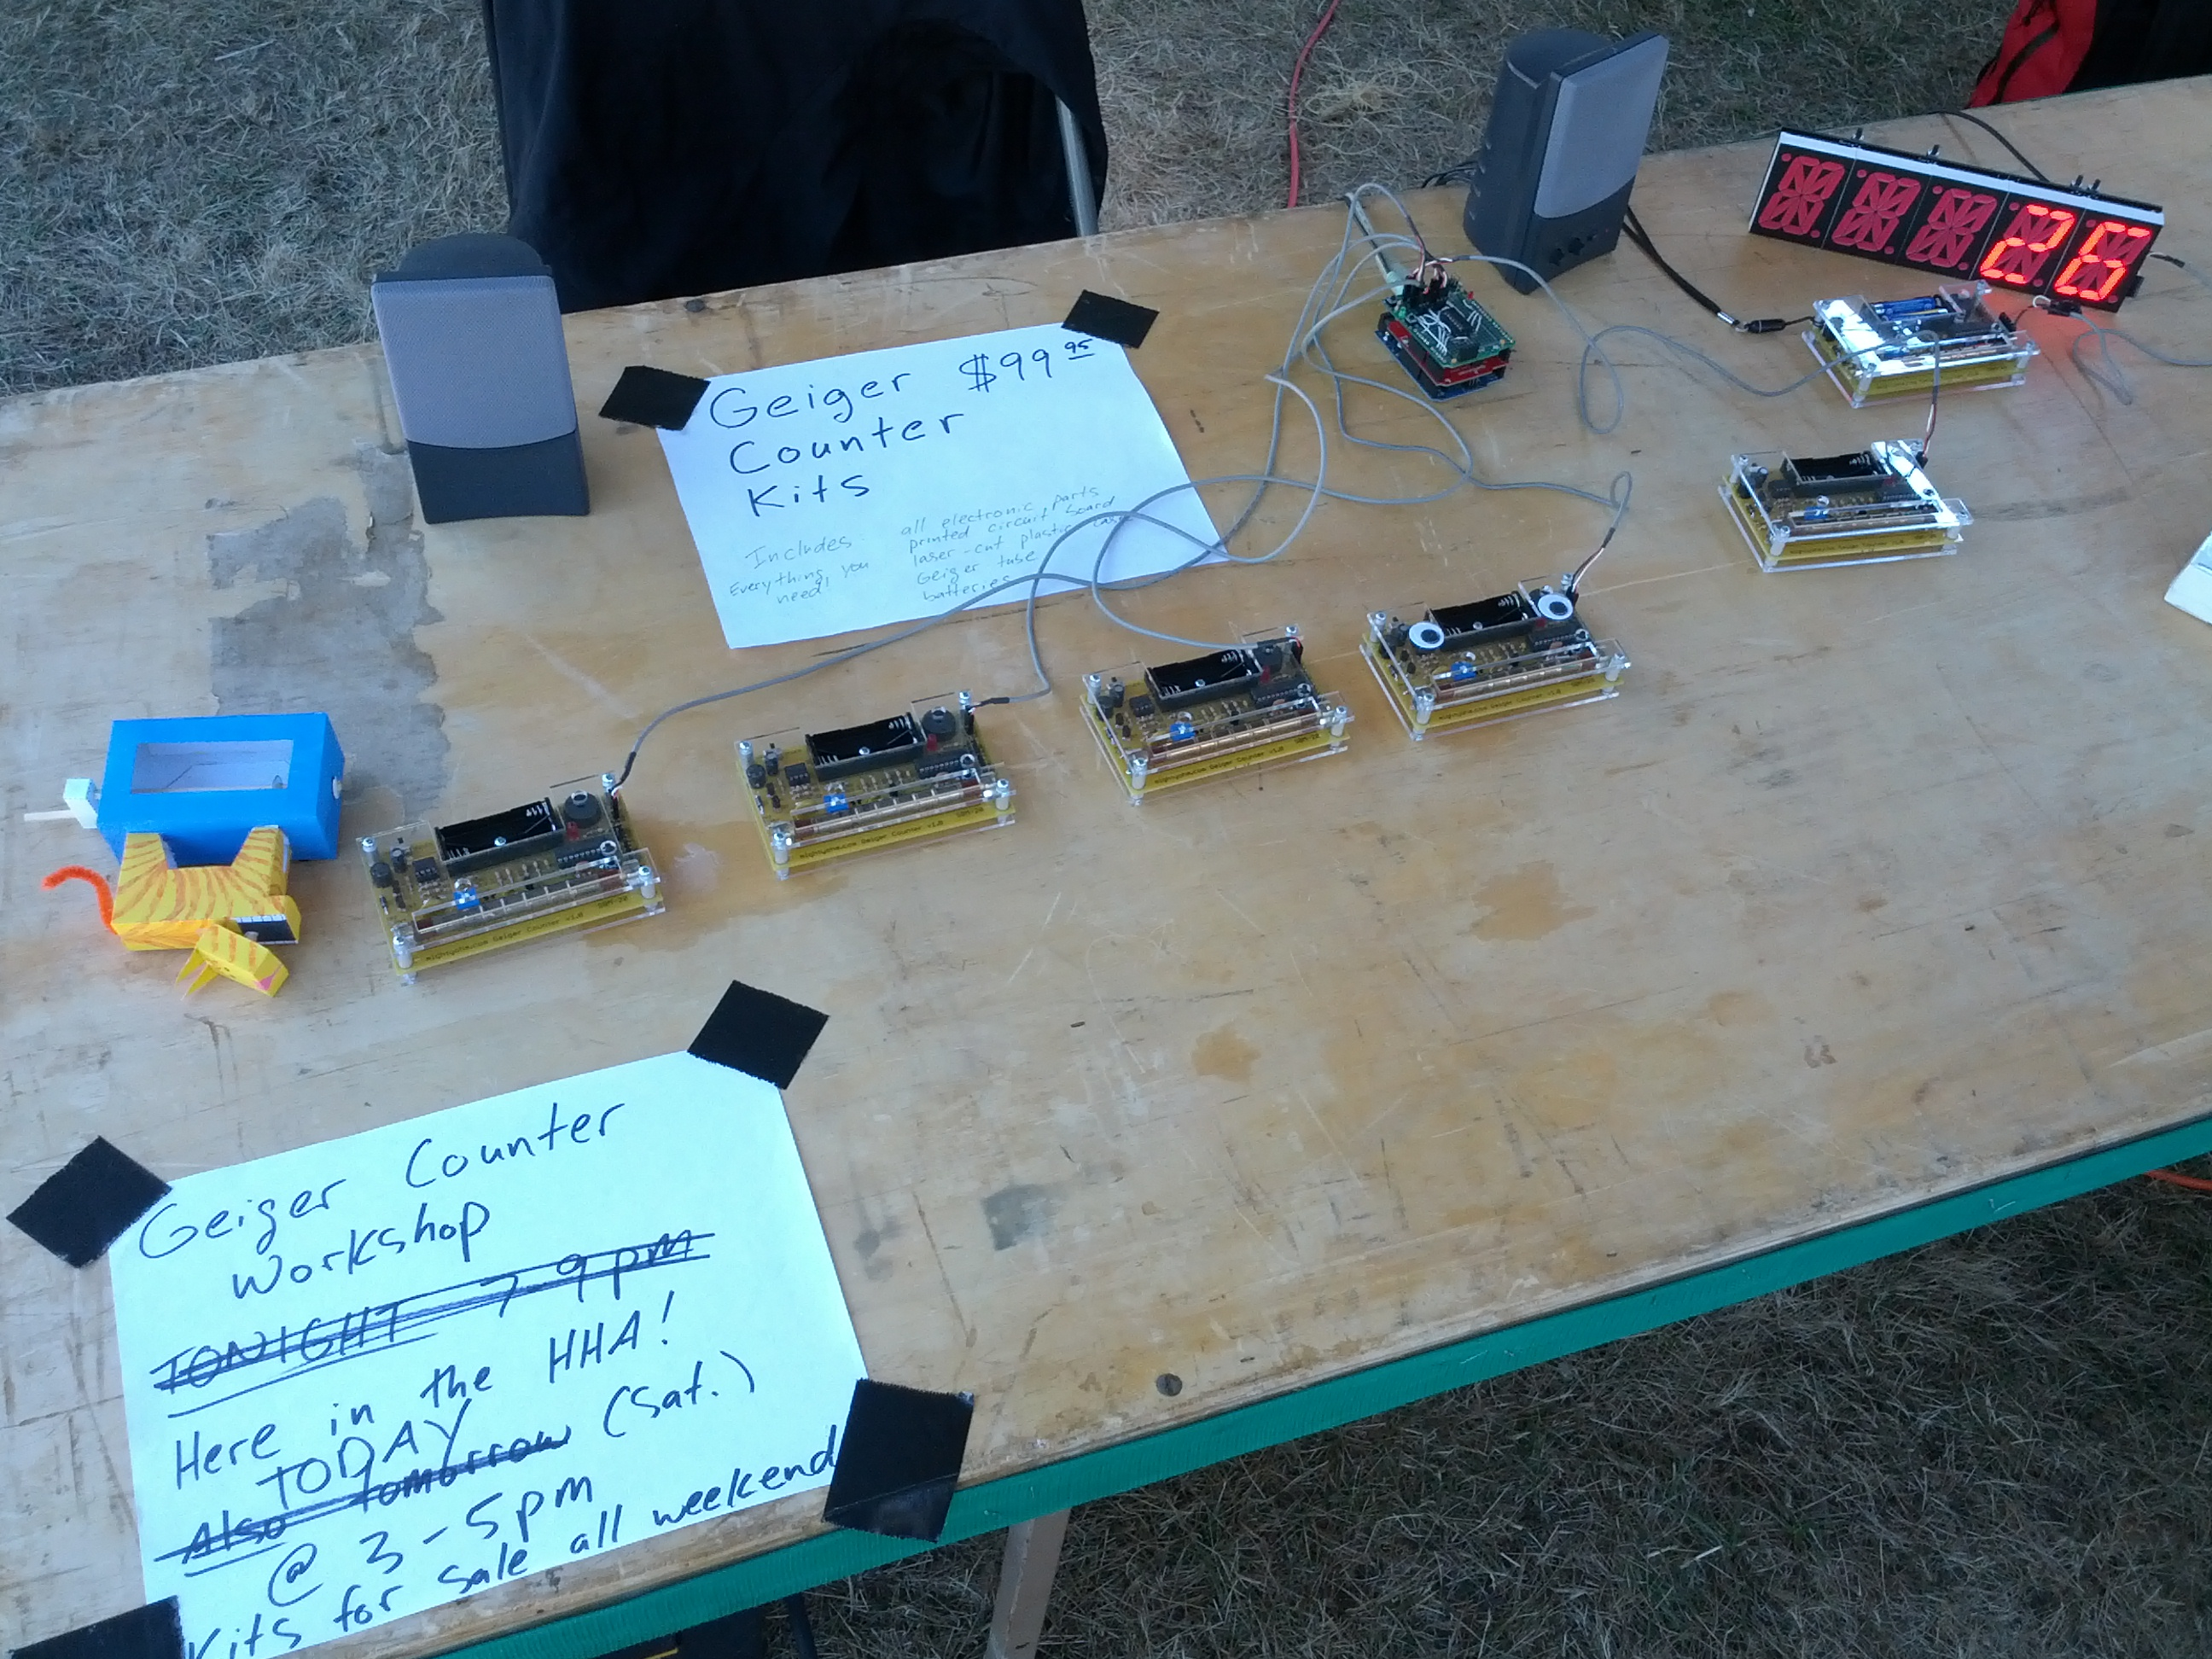 Toorcamp Journal Day 3 Finally The Implantation Station Geekwire Geiger Counter Circuits Kits At